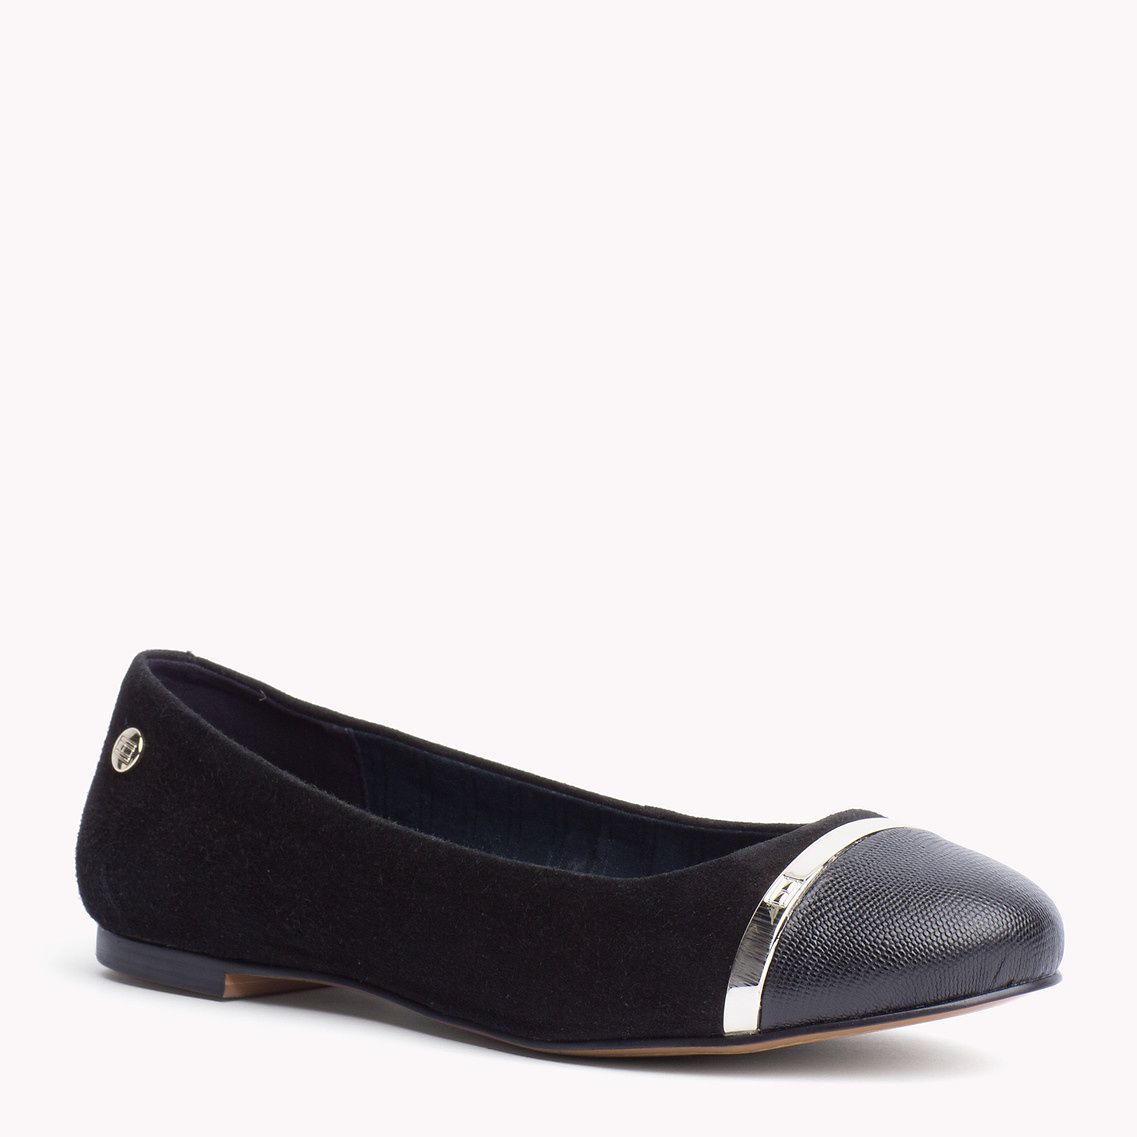 da1f96980 Tommy Hilfiger Anne Ballerina. Part of our Tommy Hilfiger Women s Footwear  Collection.